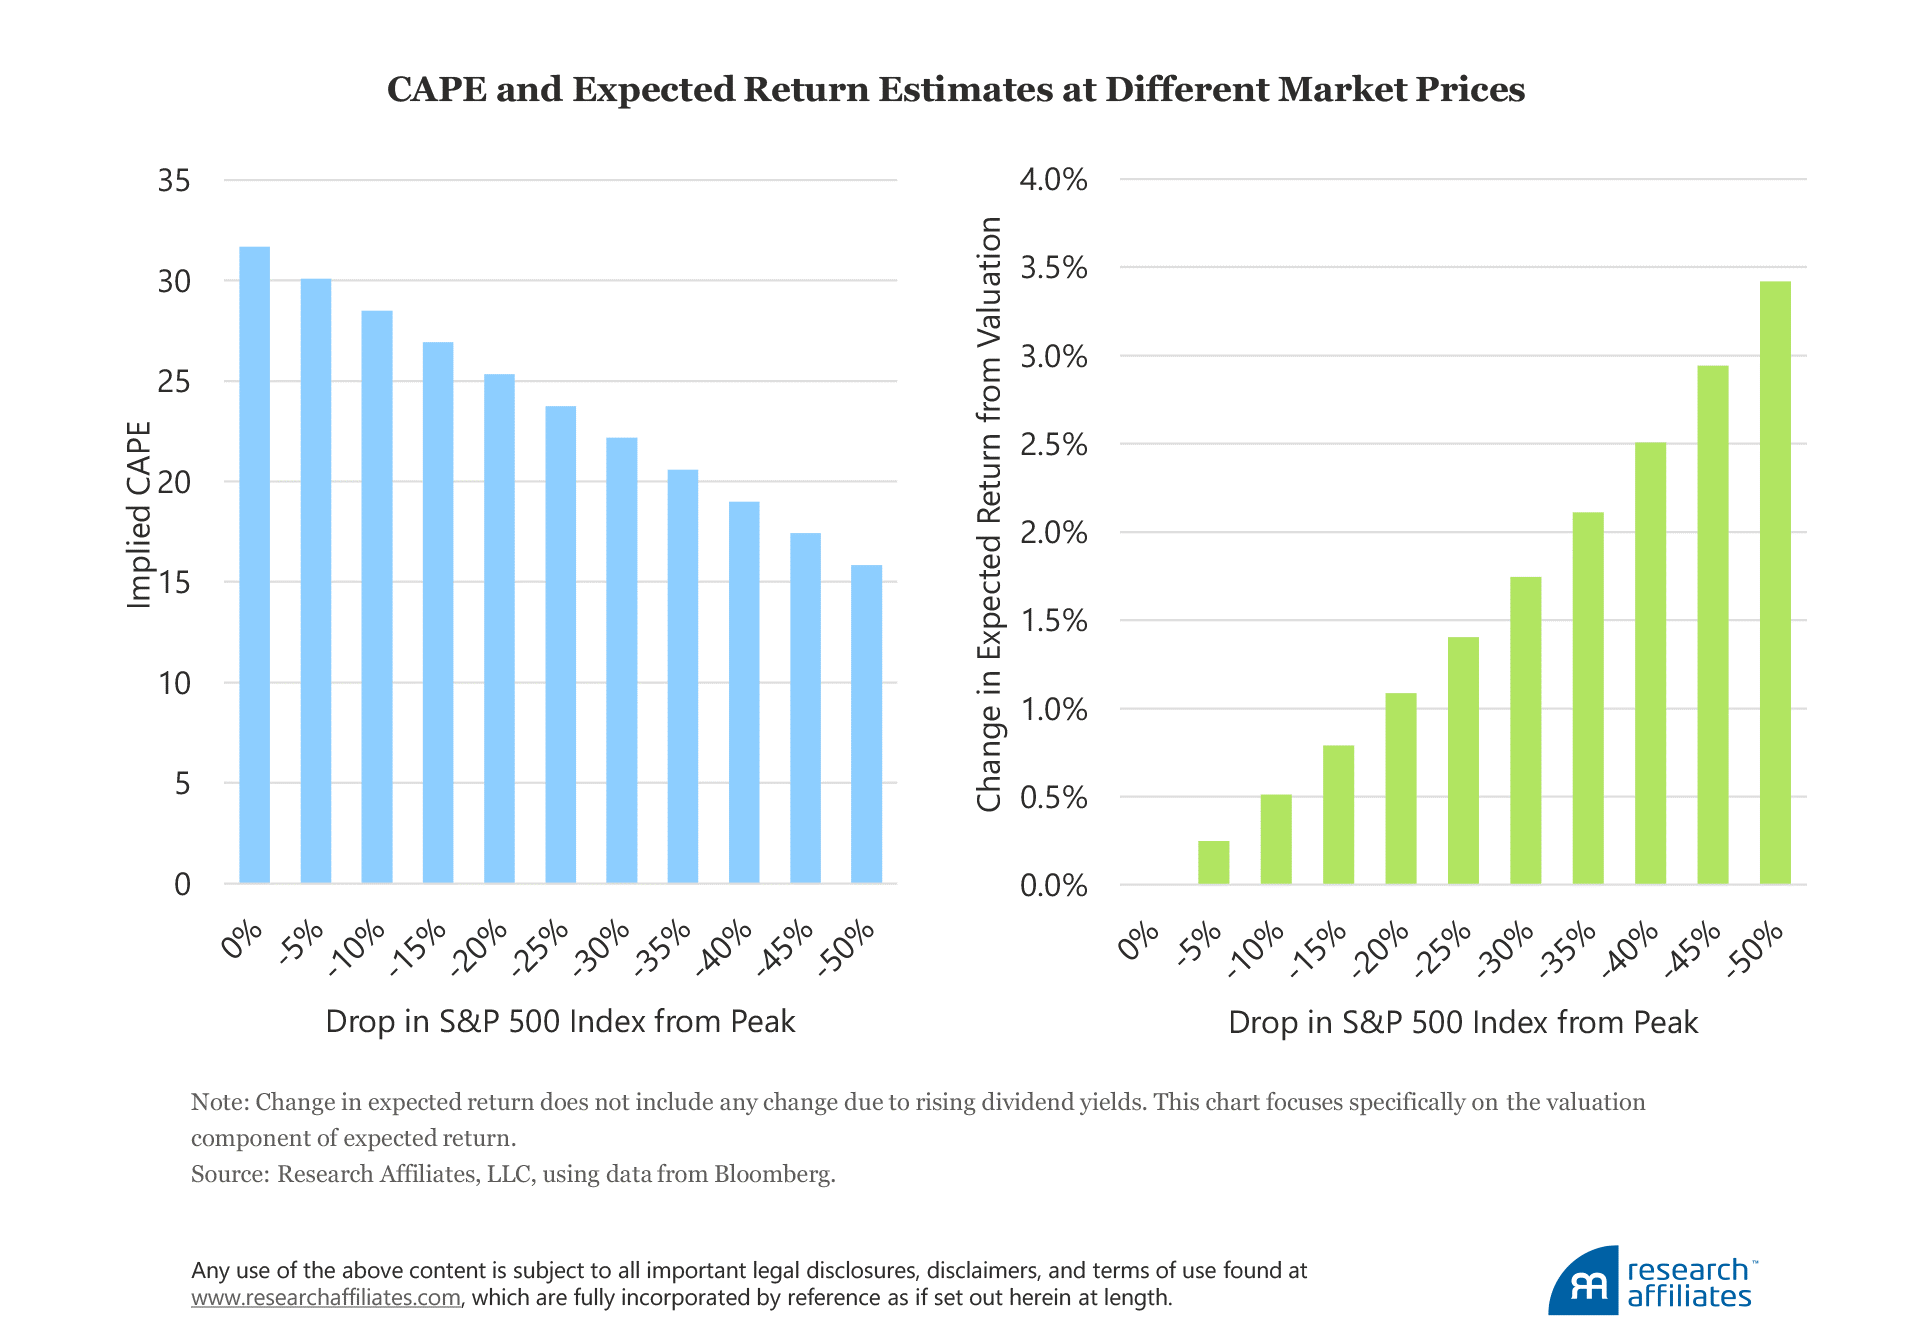 Research Affiliates CAPE and Expected Return Estimates at Different Market Prices